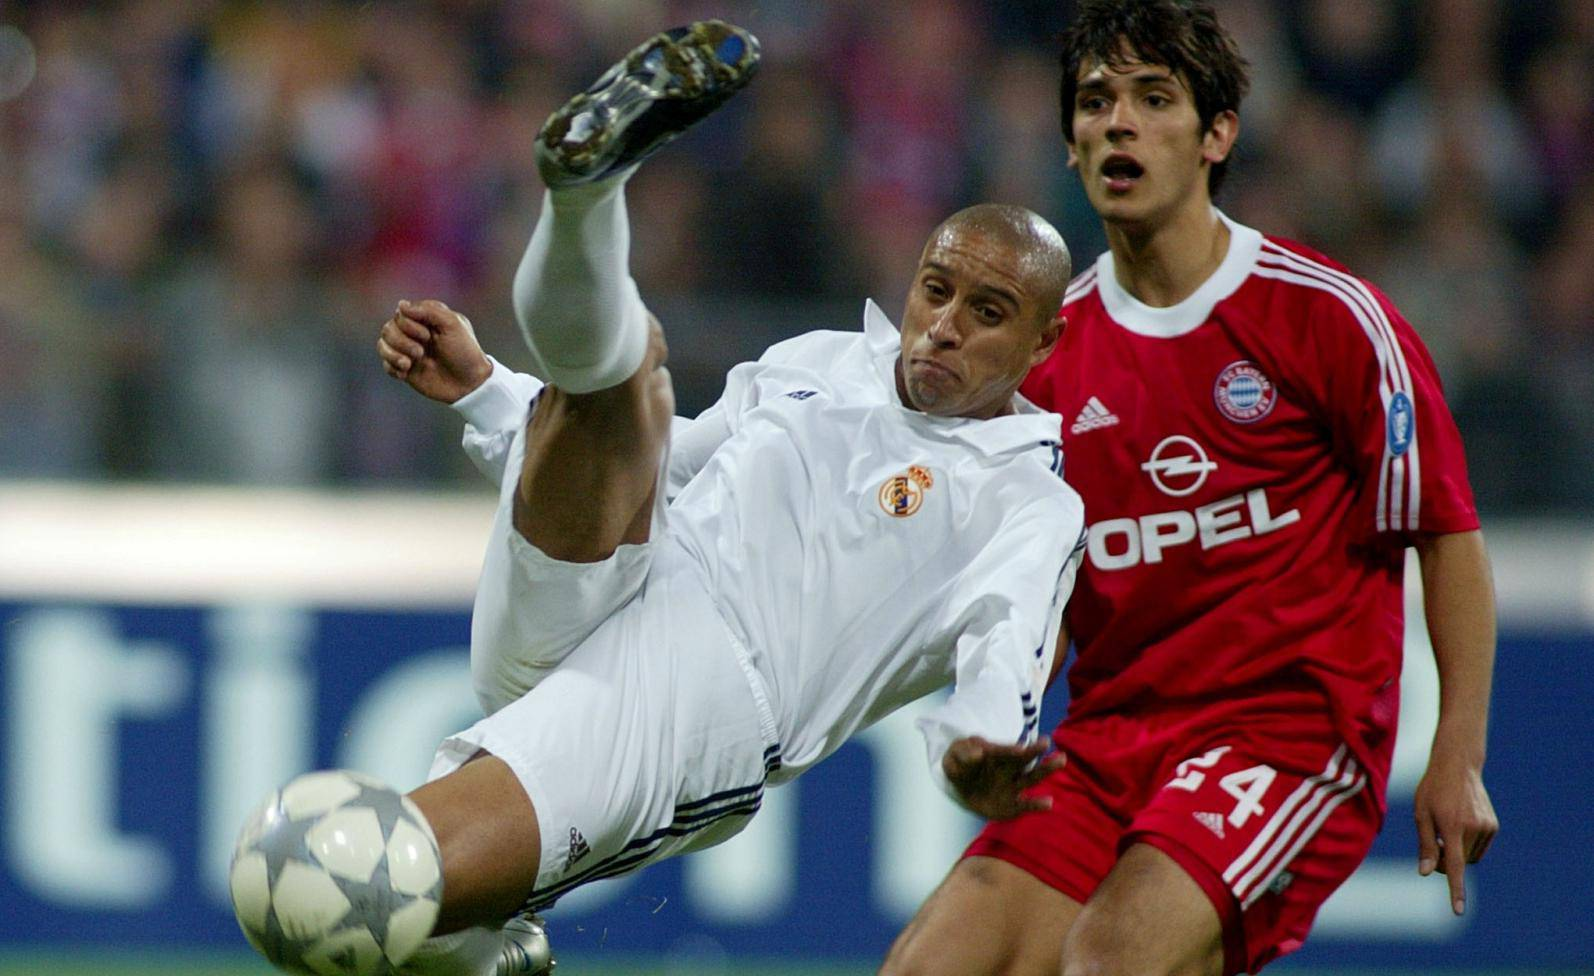 FILE PHOTO: Real Madrid defender Roberto Carlos is challenged by Bayern Munich striker Roque Santa Cruz during Real's 2-1 Champions League quarter-final first leg defeat at the Olympic Stadium, Munich.